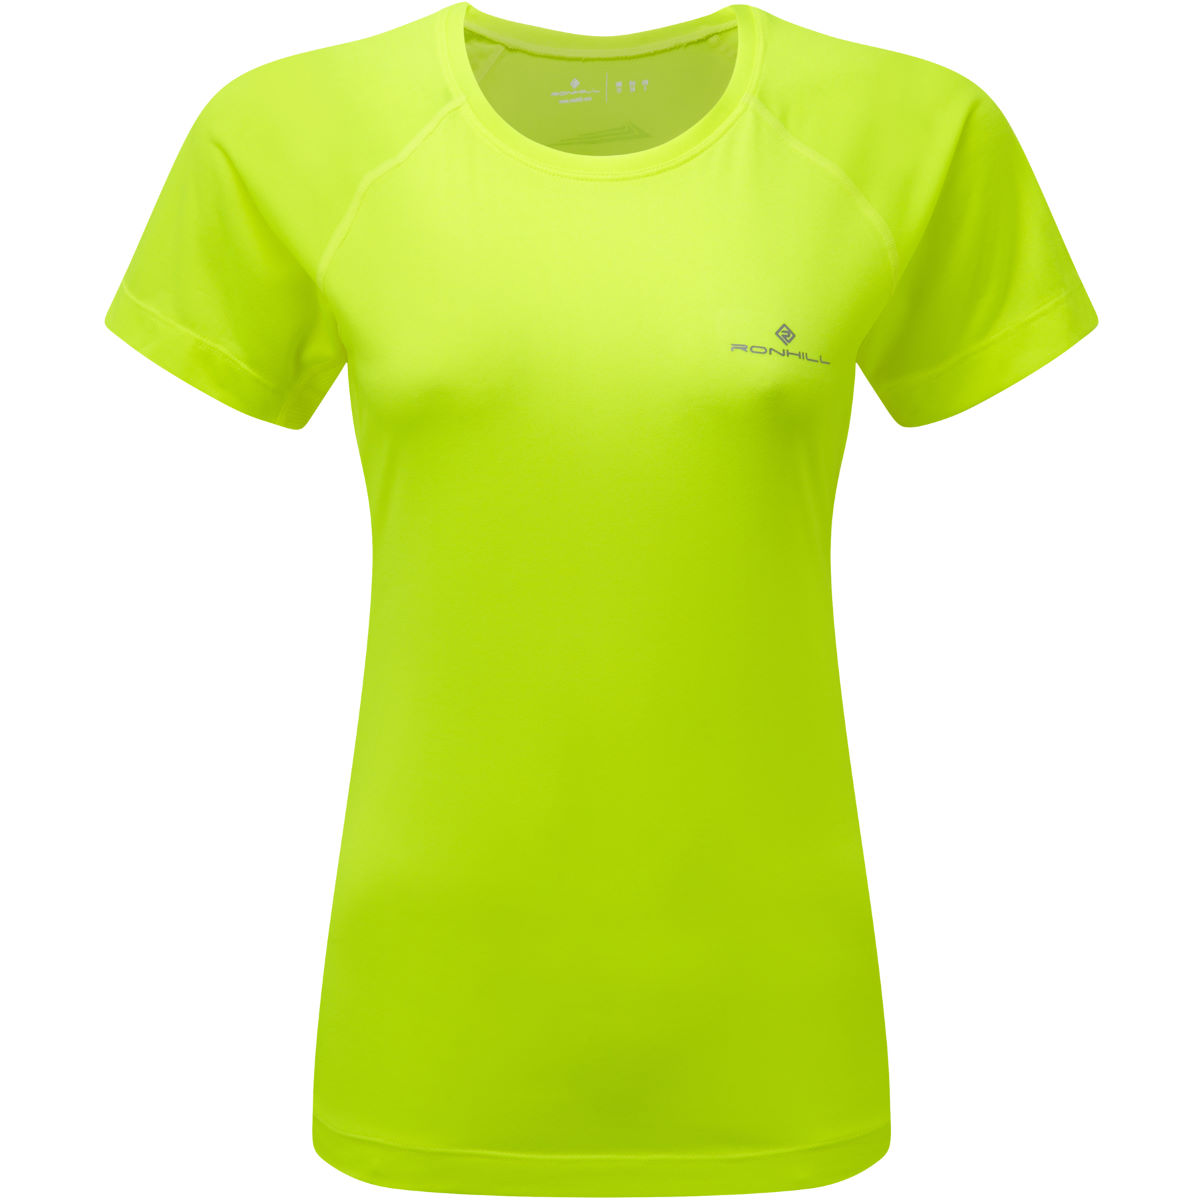 Maillot Femme Ronhill Momentum (manches courtes) - M Jaune fluo